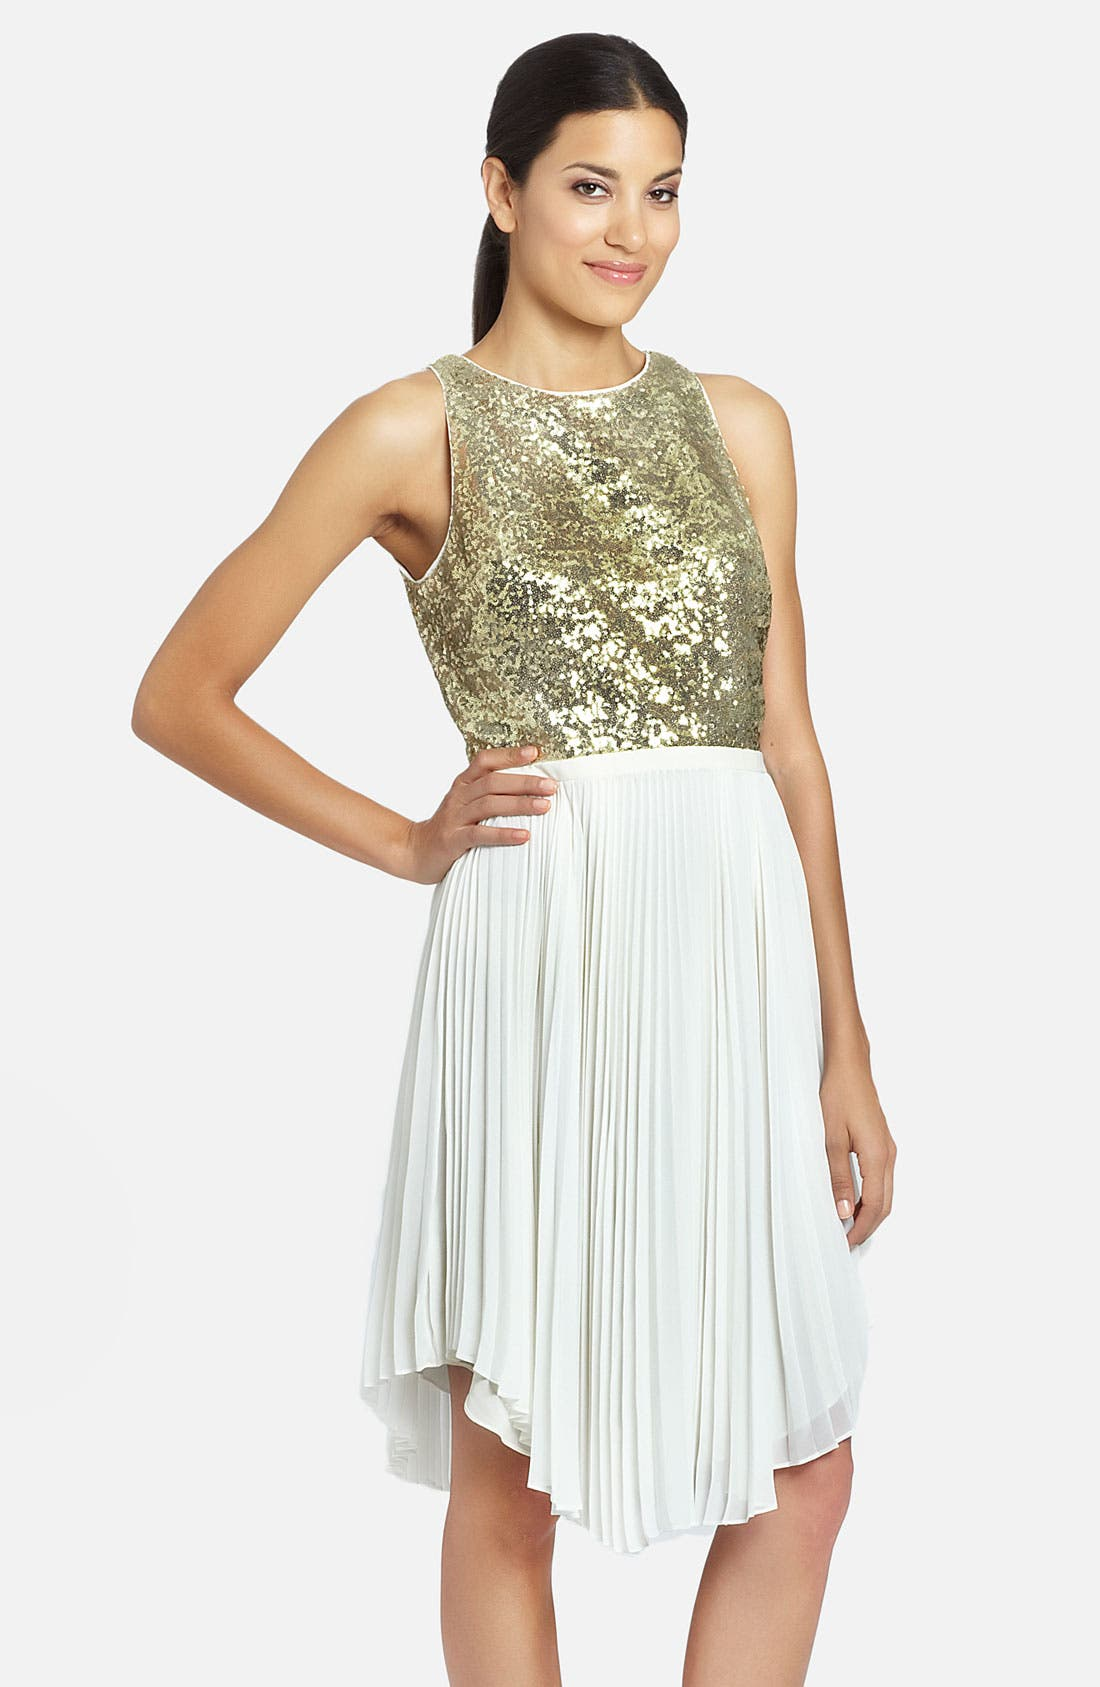 Main Image - Cynthia Steffe 'Malena' Sequin Bodice Pleated Handkerchief Dress